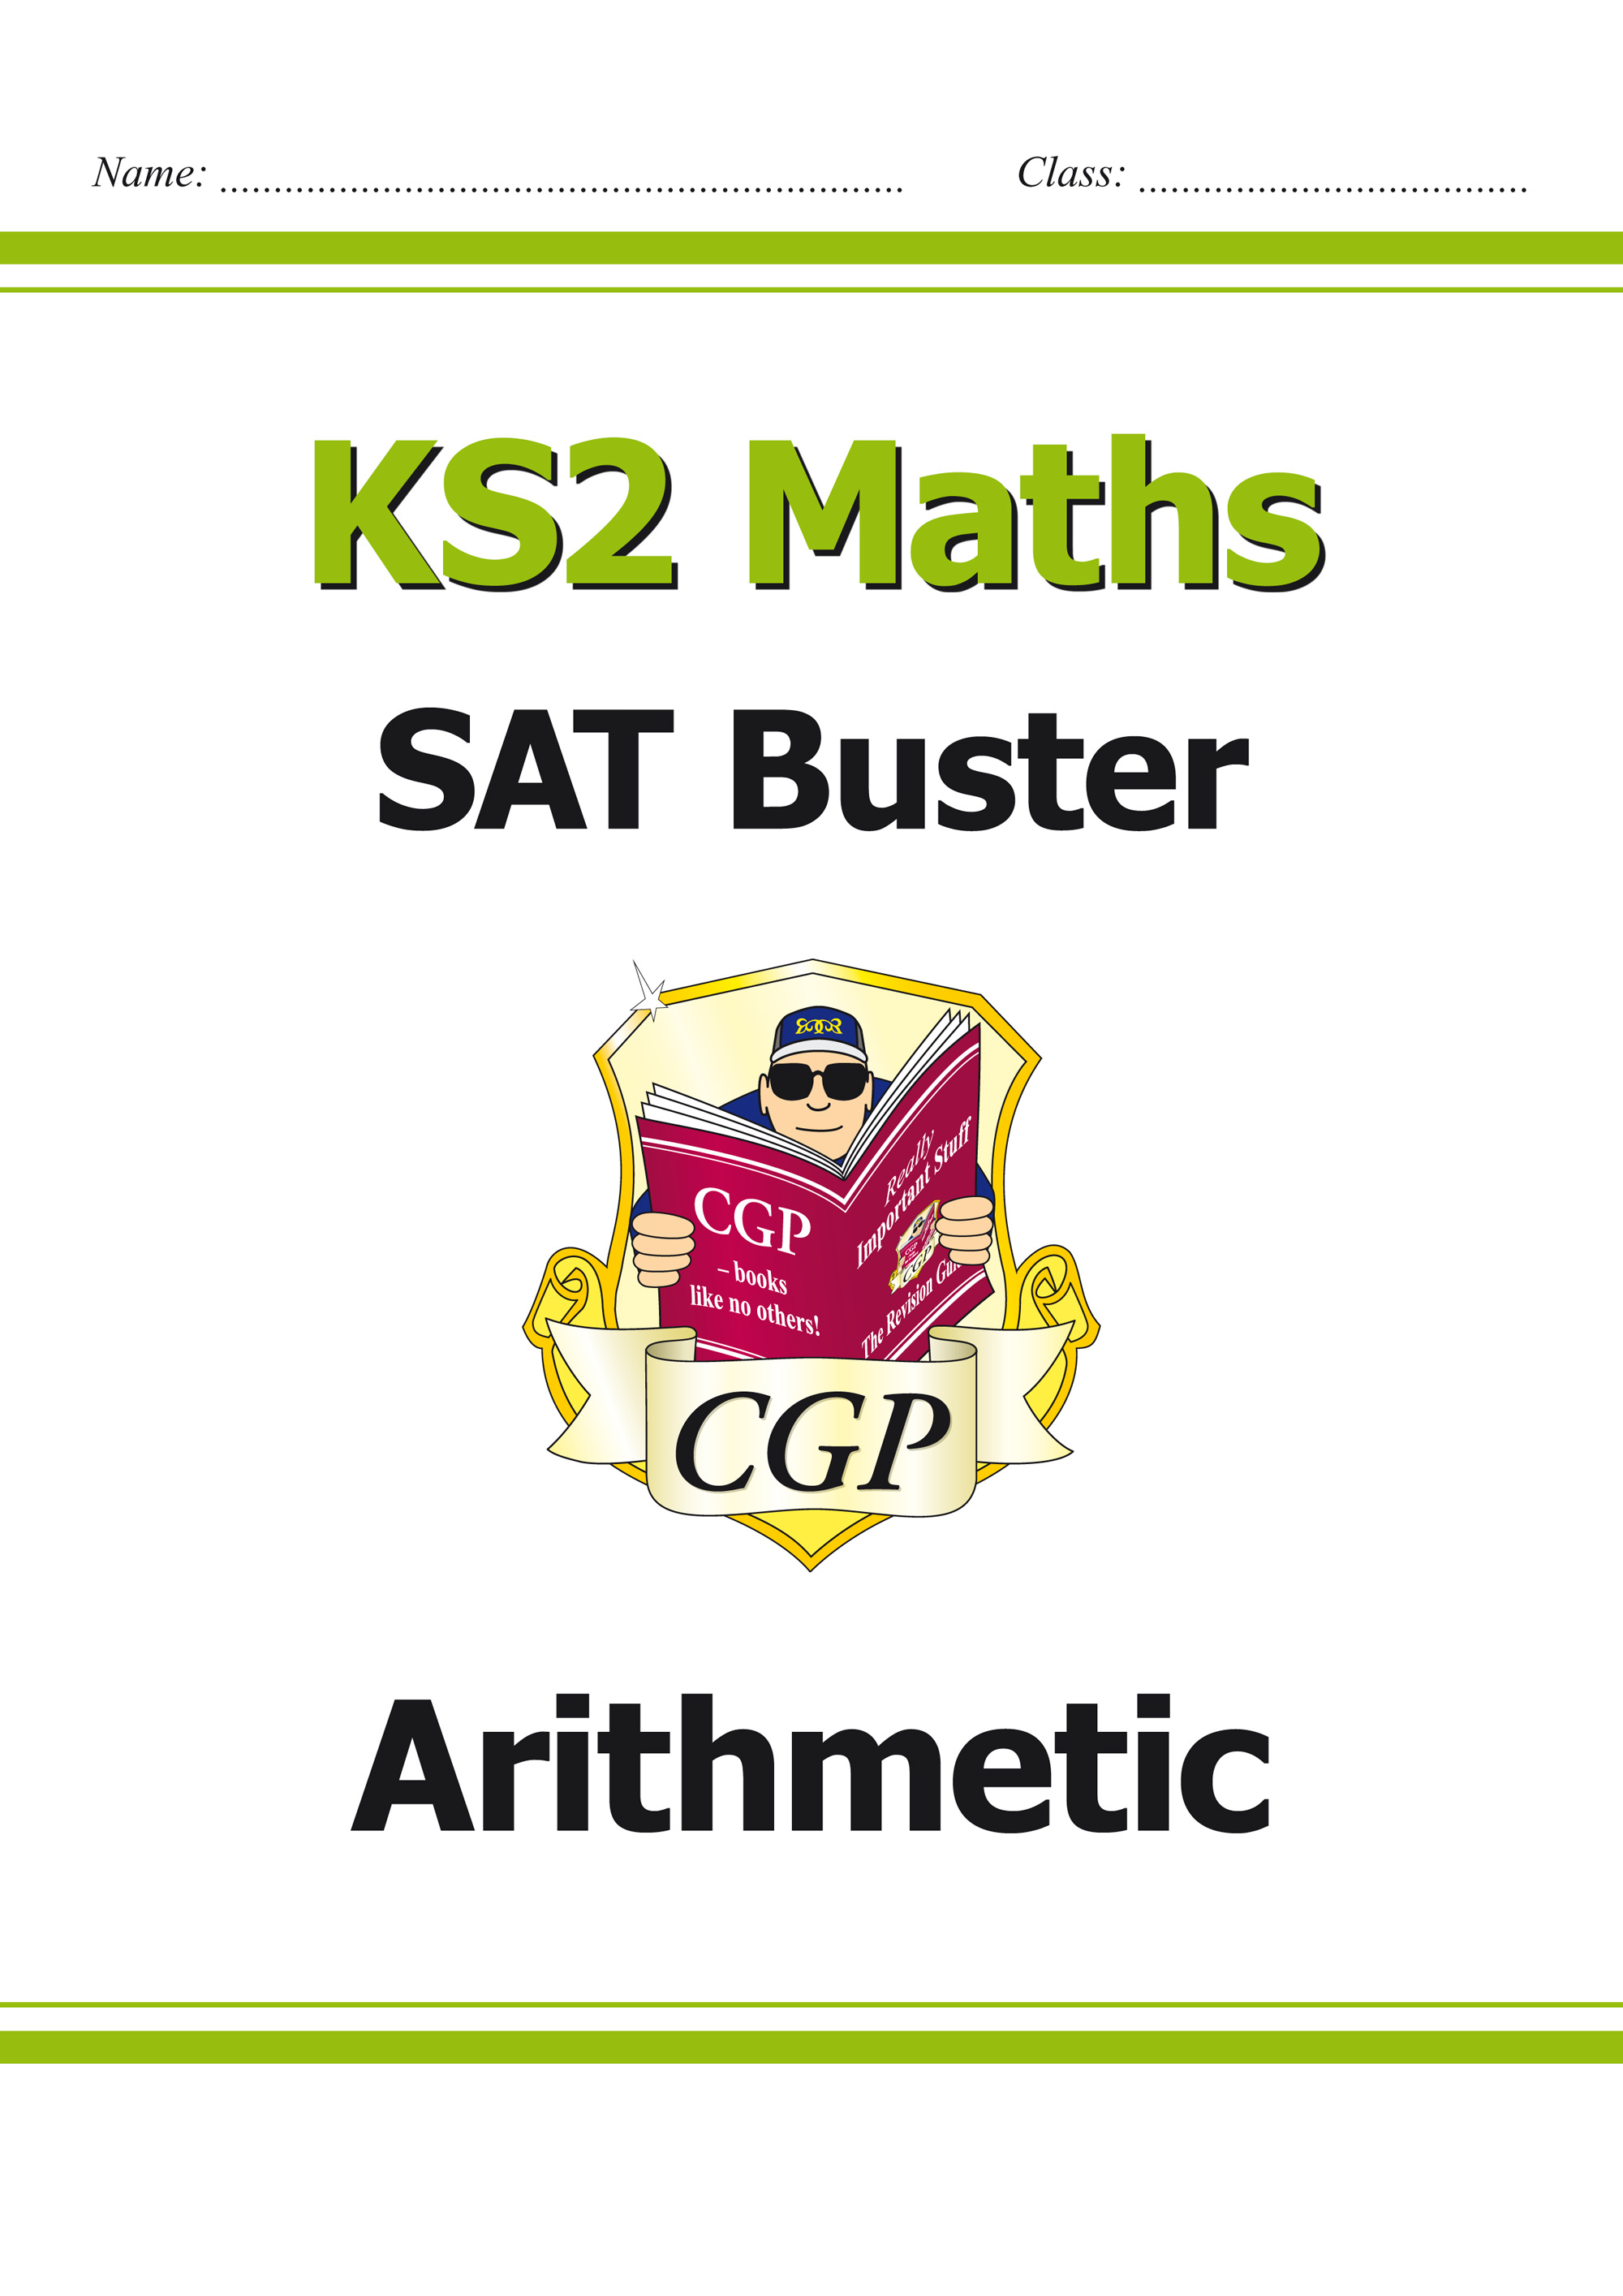 M6ARI23 - KS2 Maths SAT Buster: Arithmetic Book 1 (for the 2020 tests)